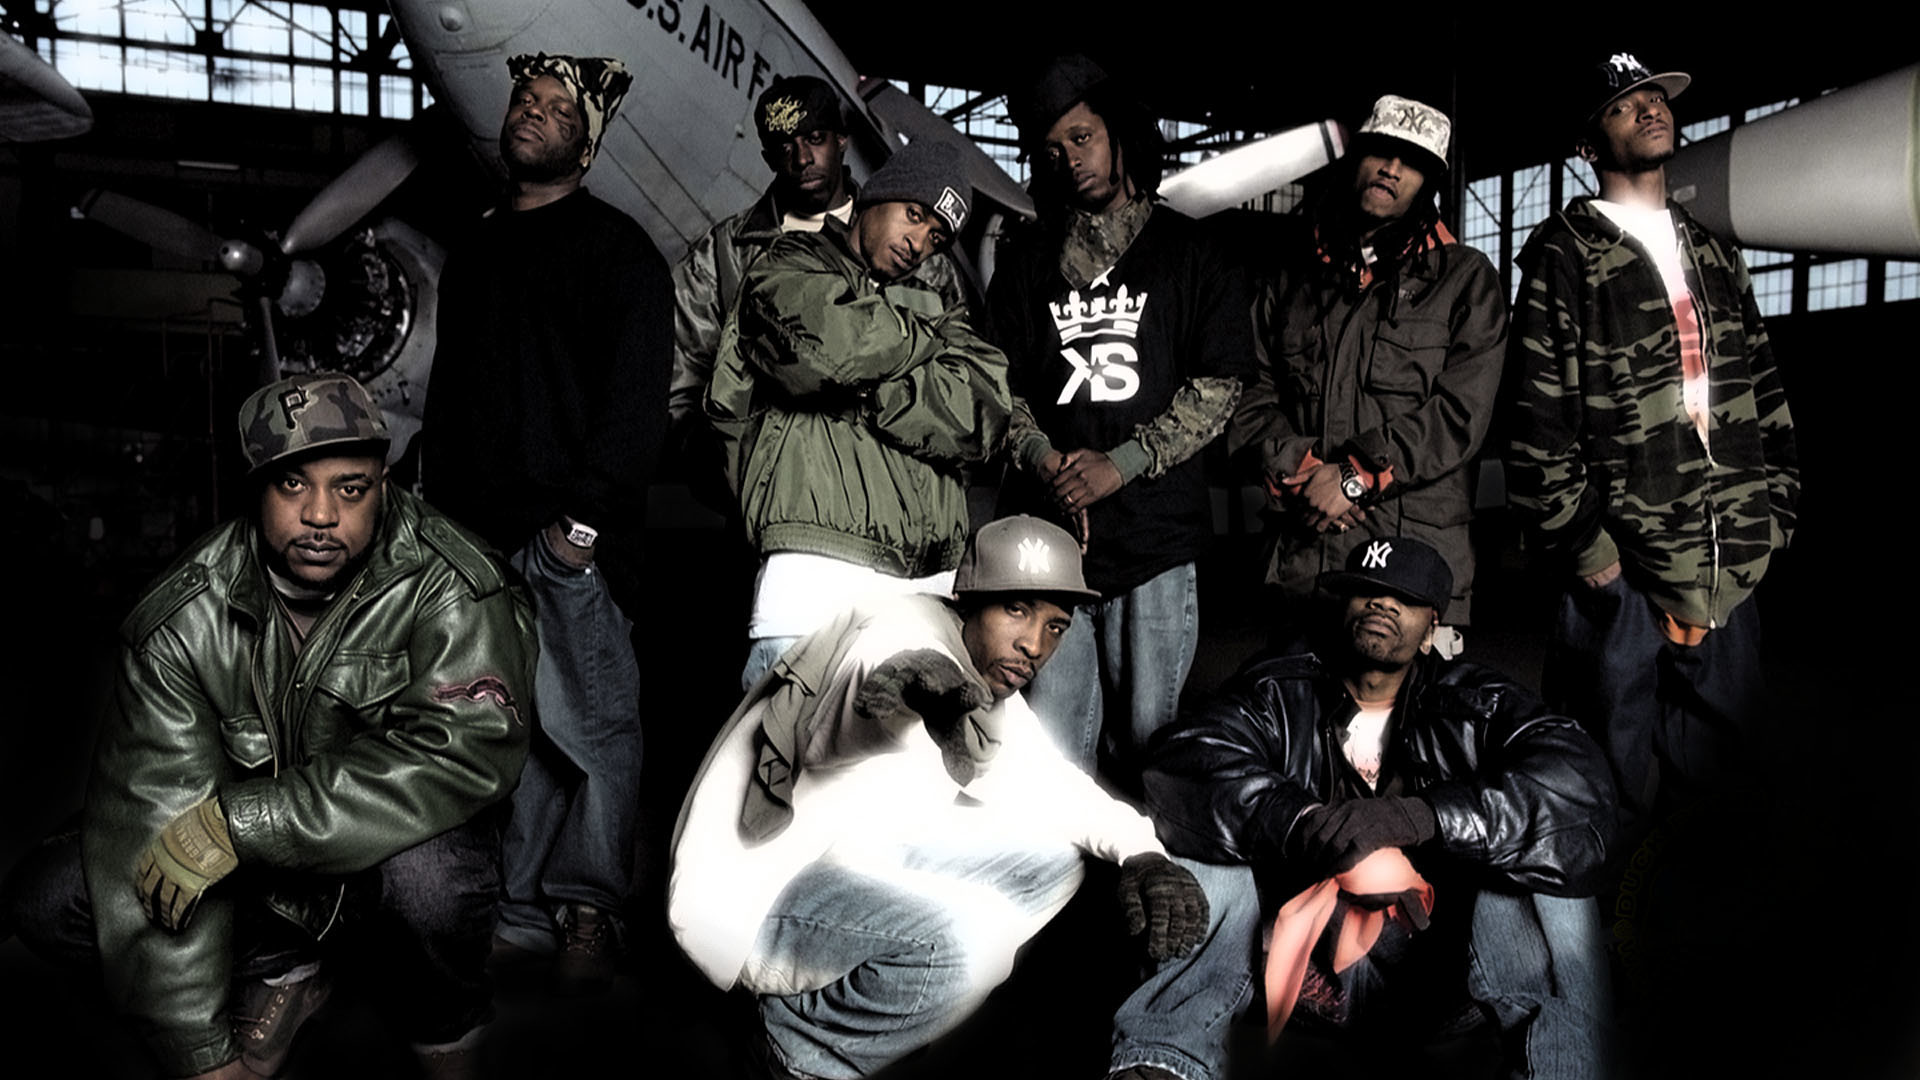 1920x1080 Boot Camp Clik backdrop wallpaper